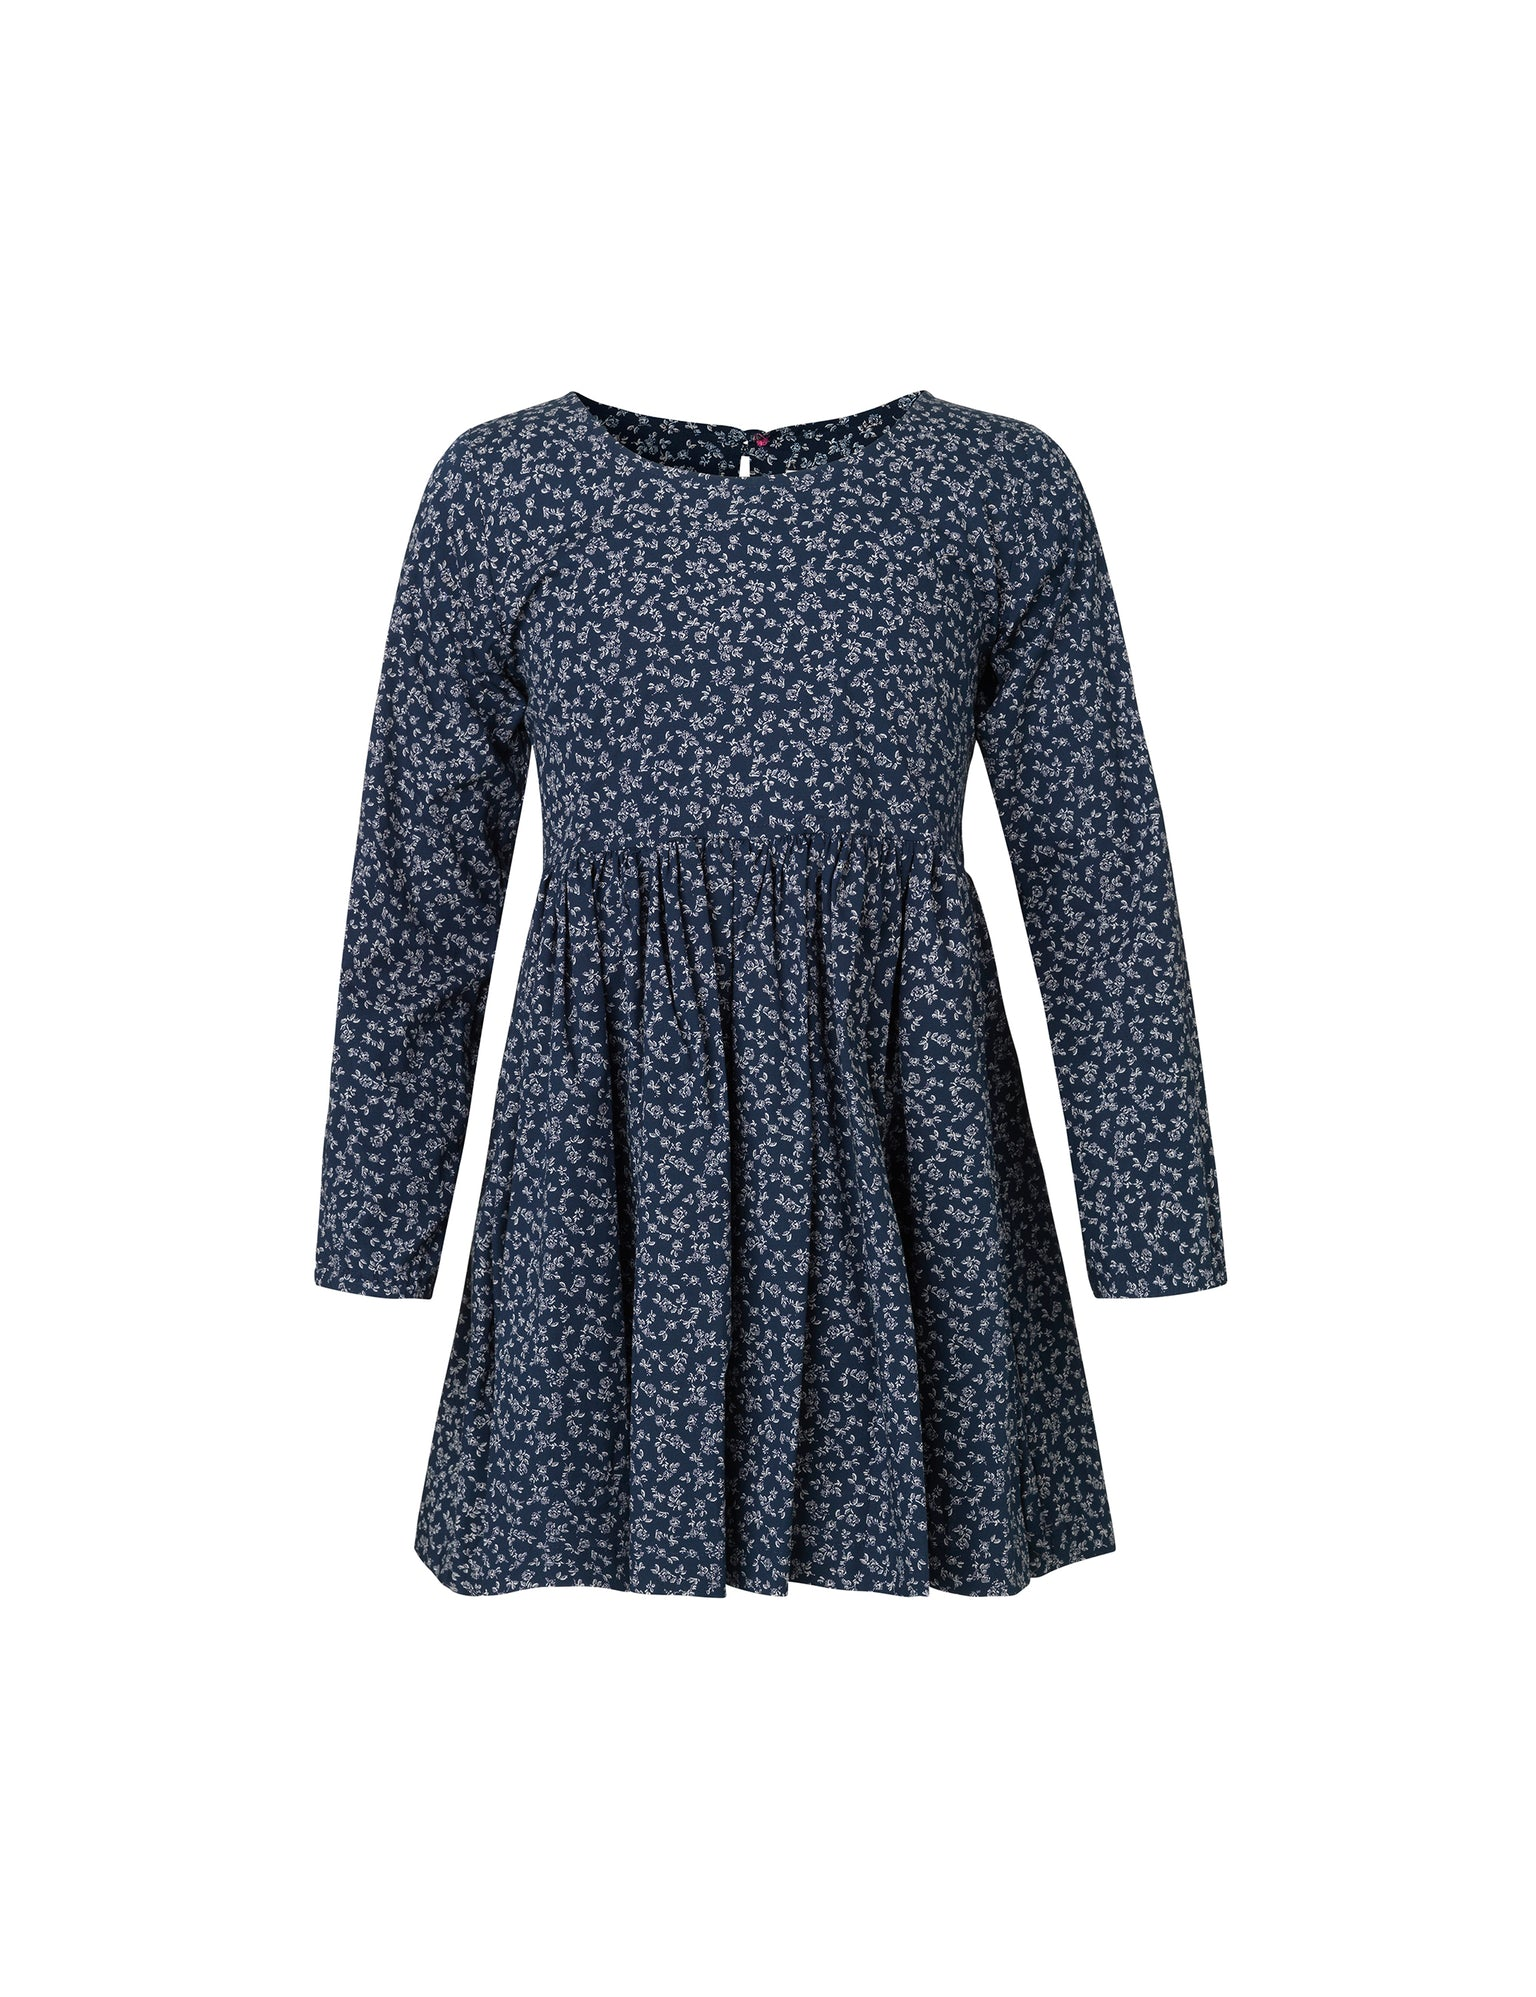 Vikdal Daisy Sleeve, Navy Flower